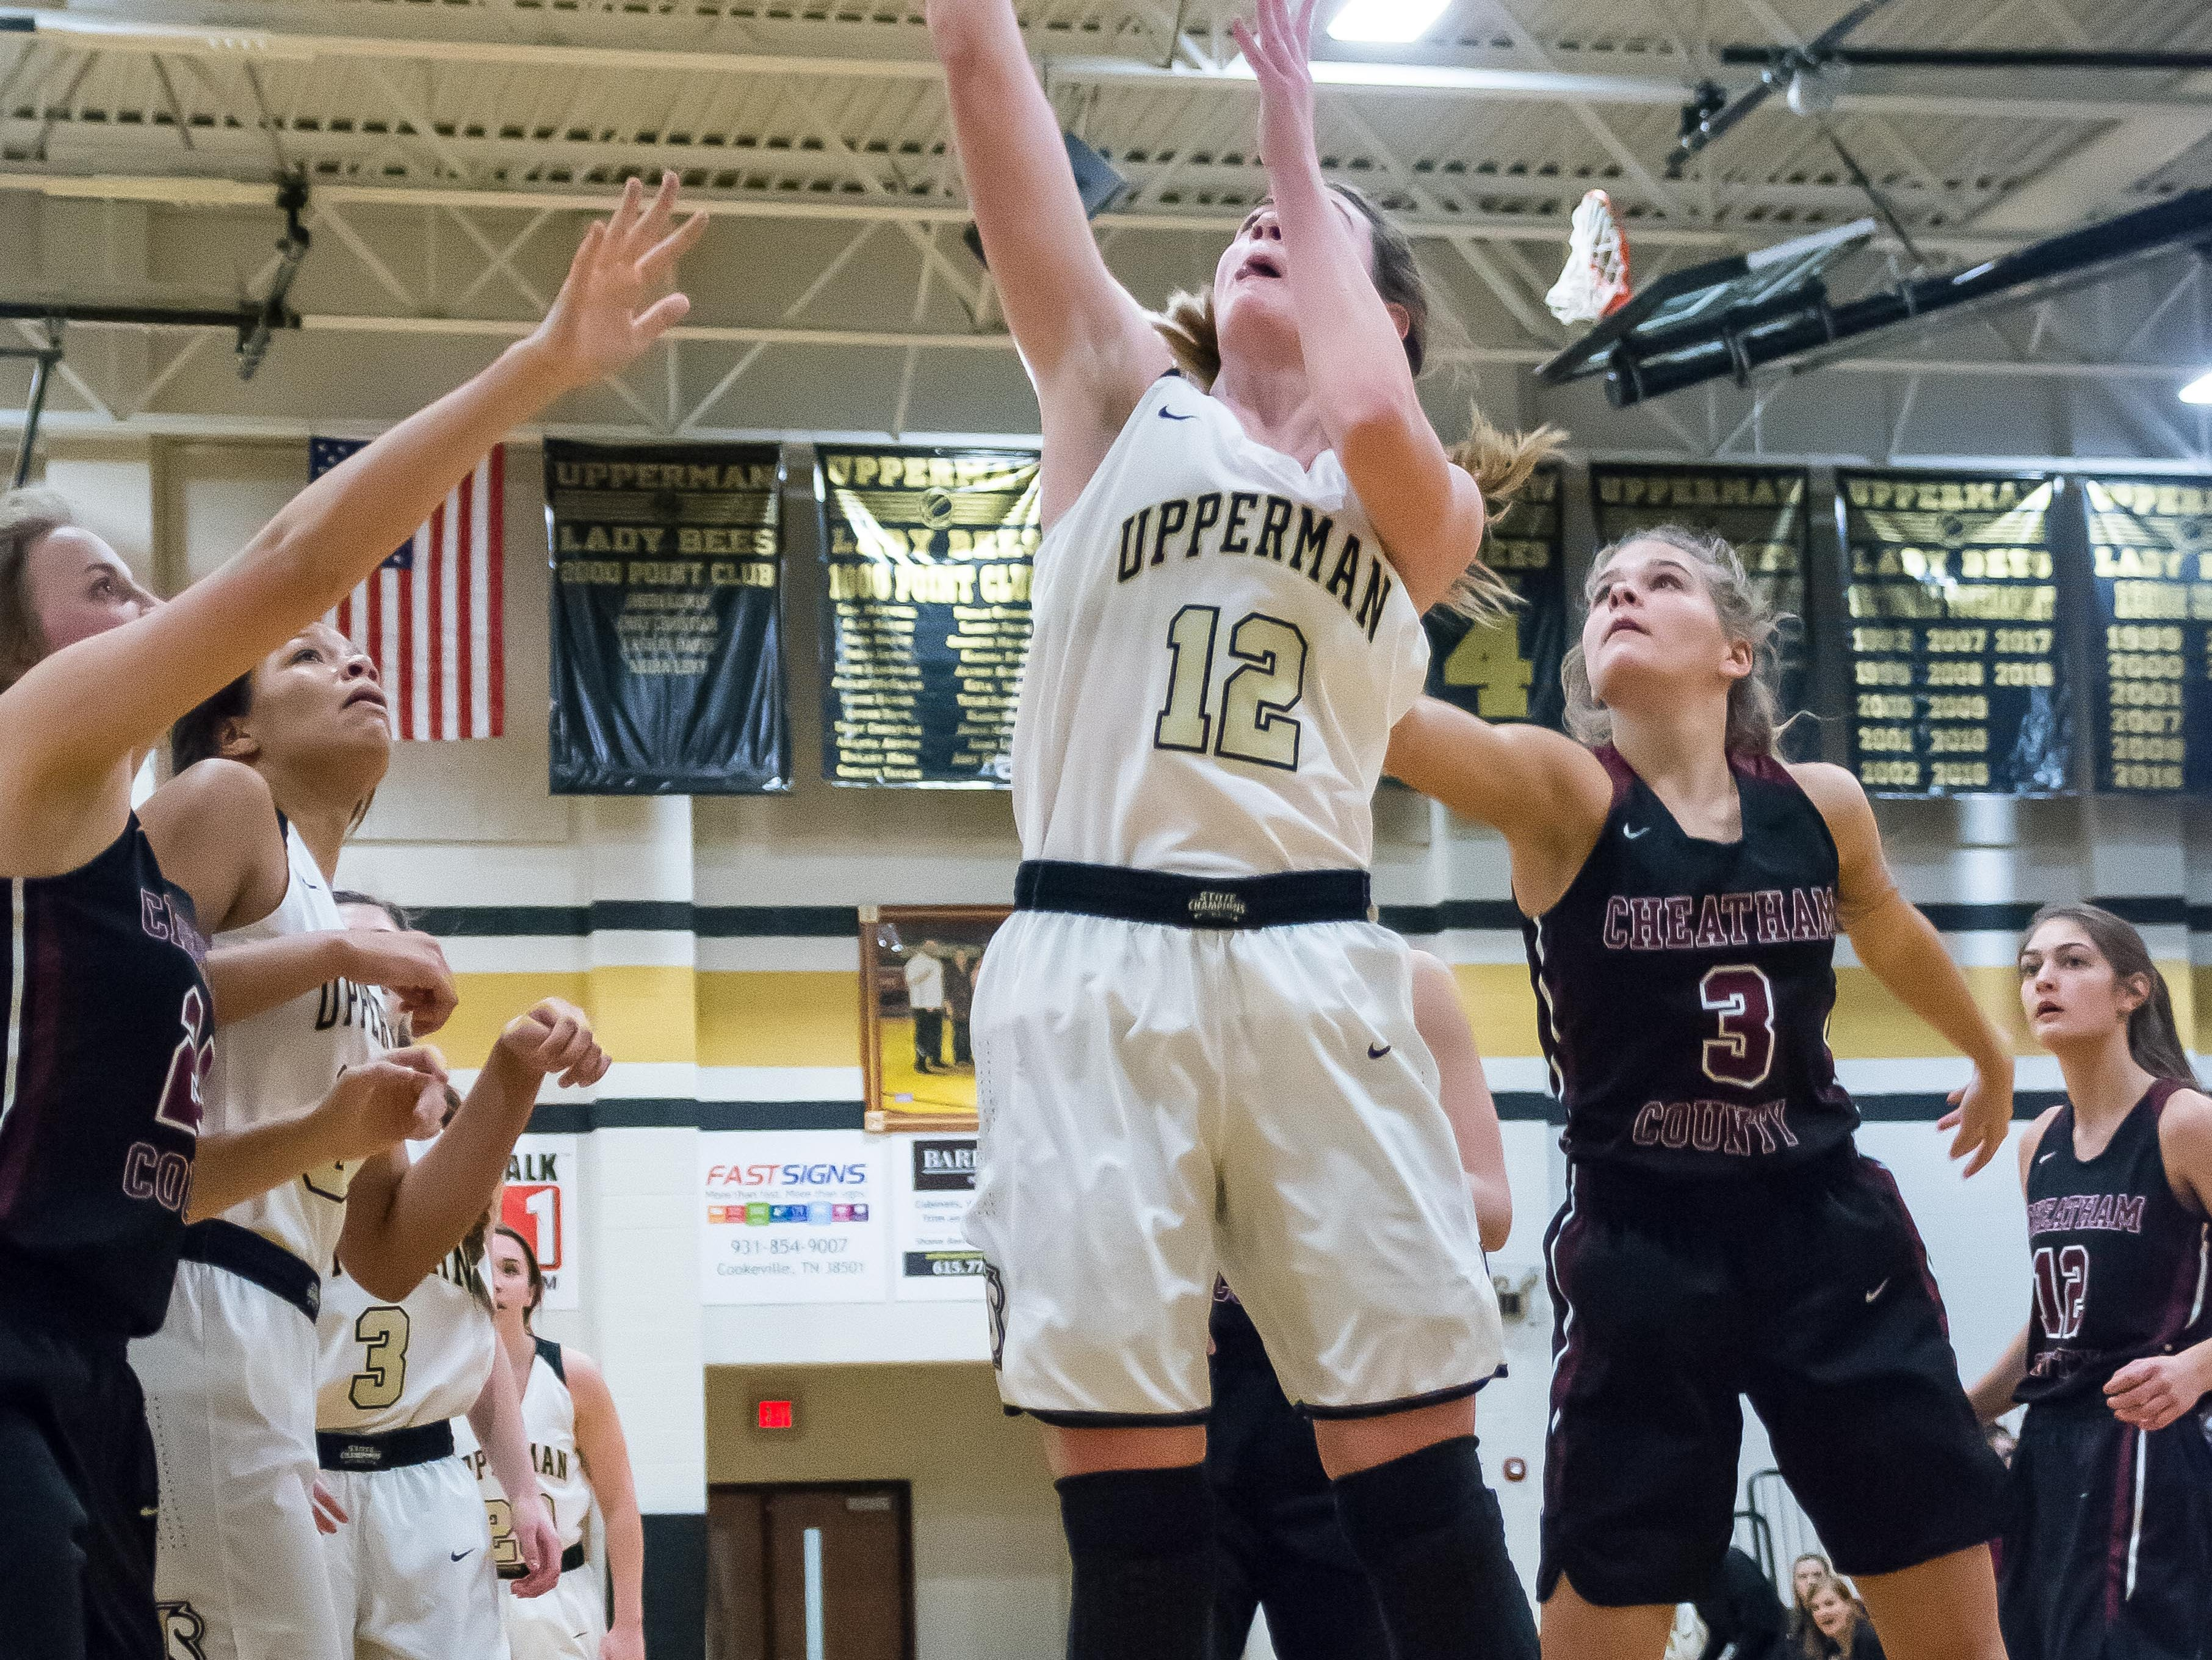 Upperman ladies' Brooke Shrum putting up a shot.